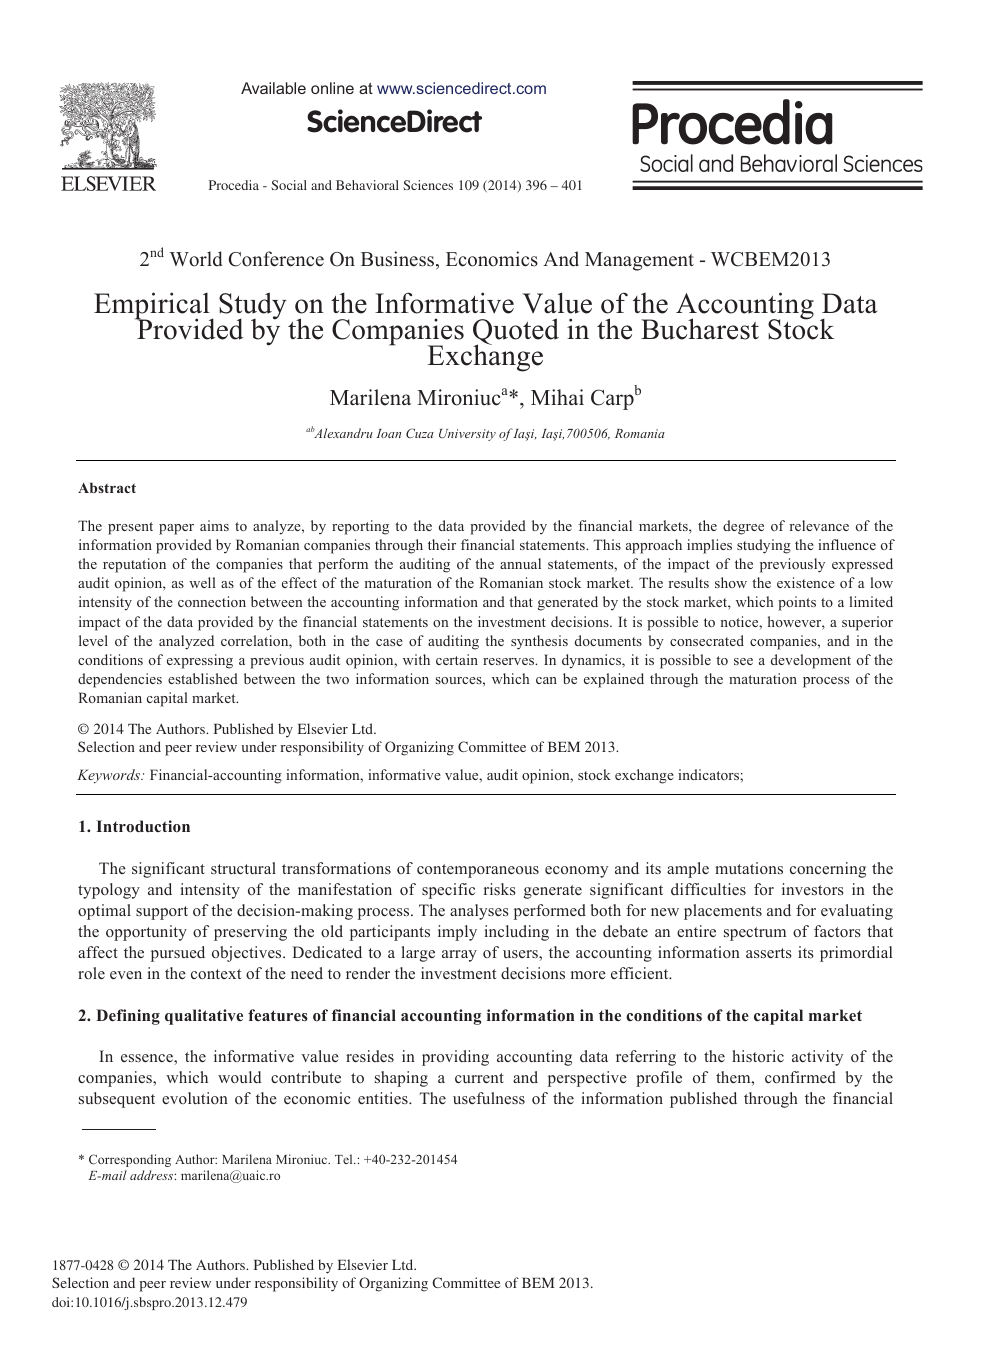 Empirical Study on the Informative Value of the Accounting Data